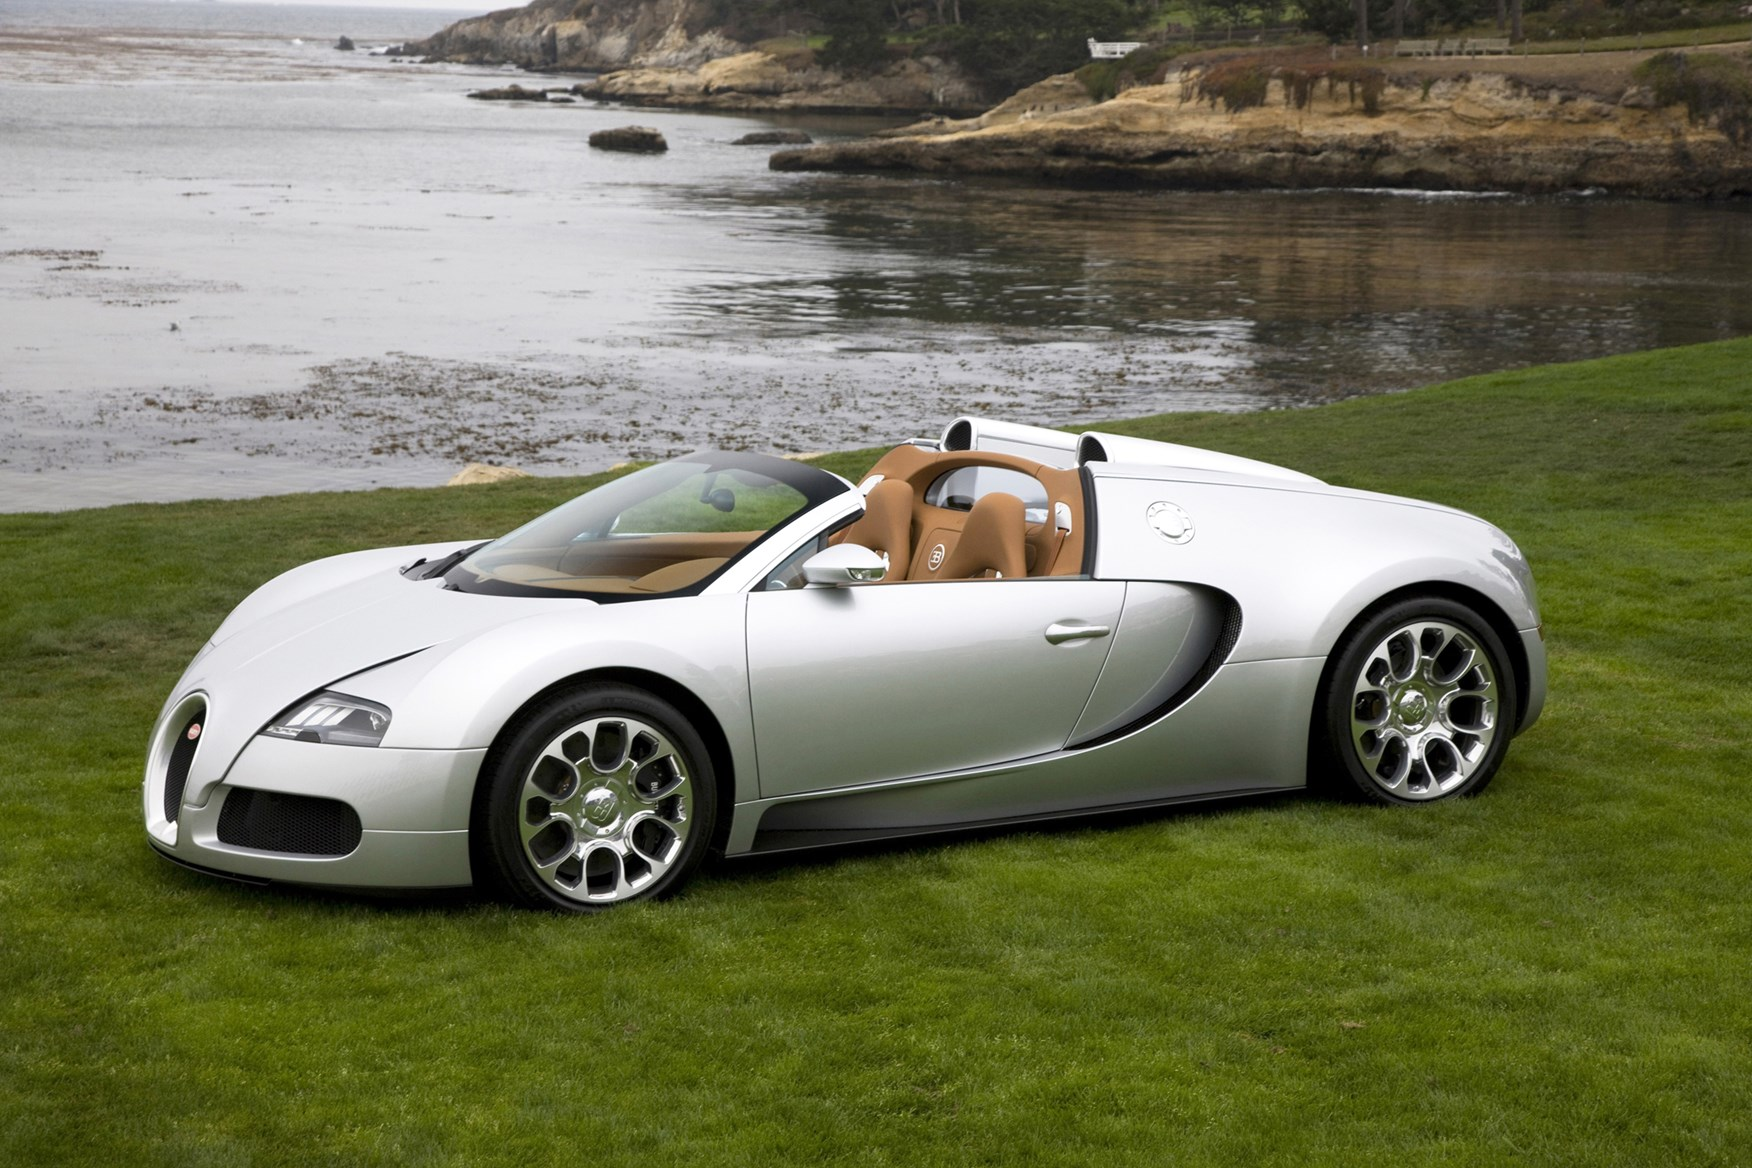 Bugatti Veyron Coupe (2006 - ) Photos | Parkers on hupmobile coupe, isuzu coupe, citroen coupe, mgb coupe, audi coupe, mazda coupe, bentley coupe, hudson coupe, cord coupe, rolls-royce ghost coupe, bmw coupe, aston martin coupe, maybach coupe, subaru coupe, lincoln coupe, lamborghini coupe, ferrari coupe, lotus coupe, lexus coupe, fisker coupe,